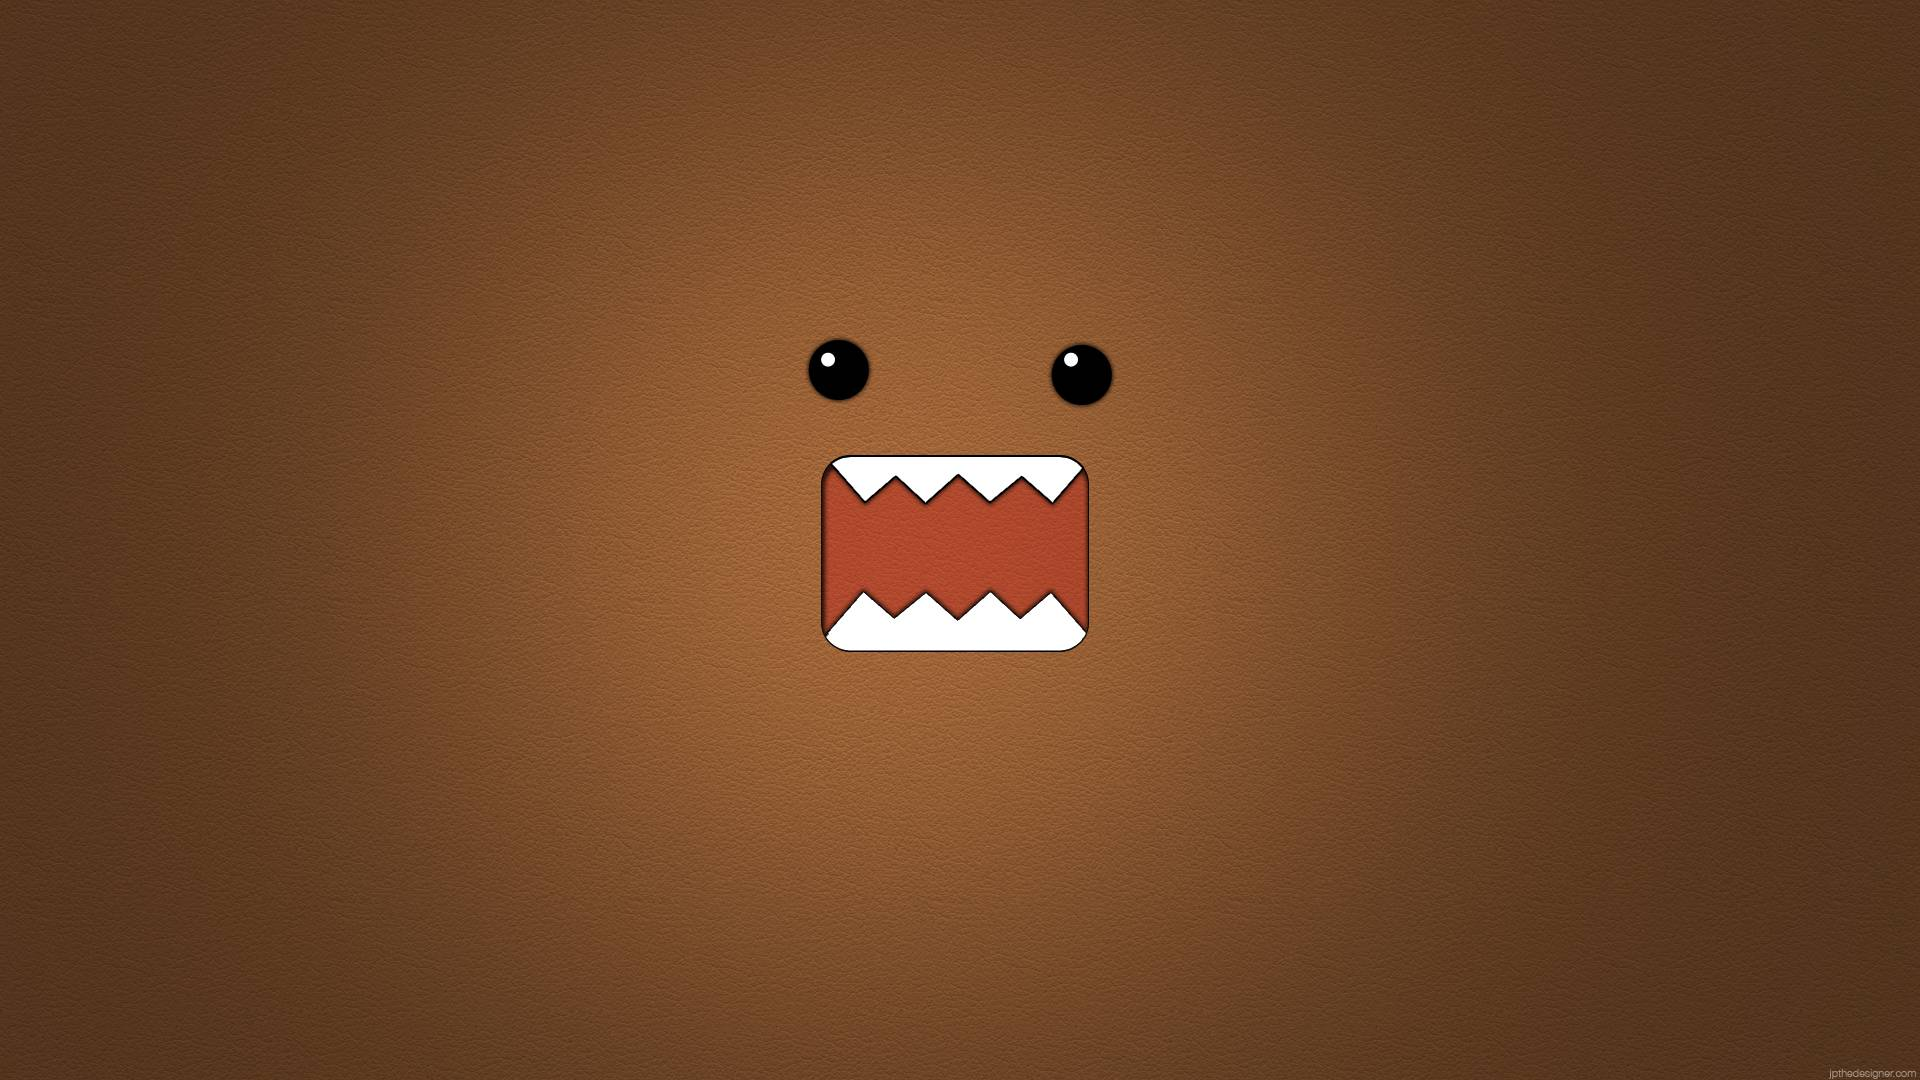 Domo Kun Wallpapers 1920x1080